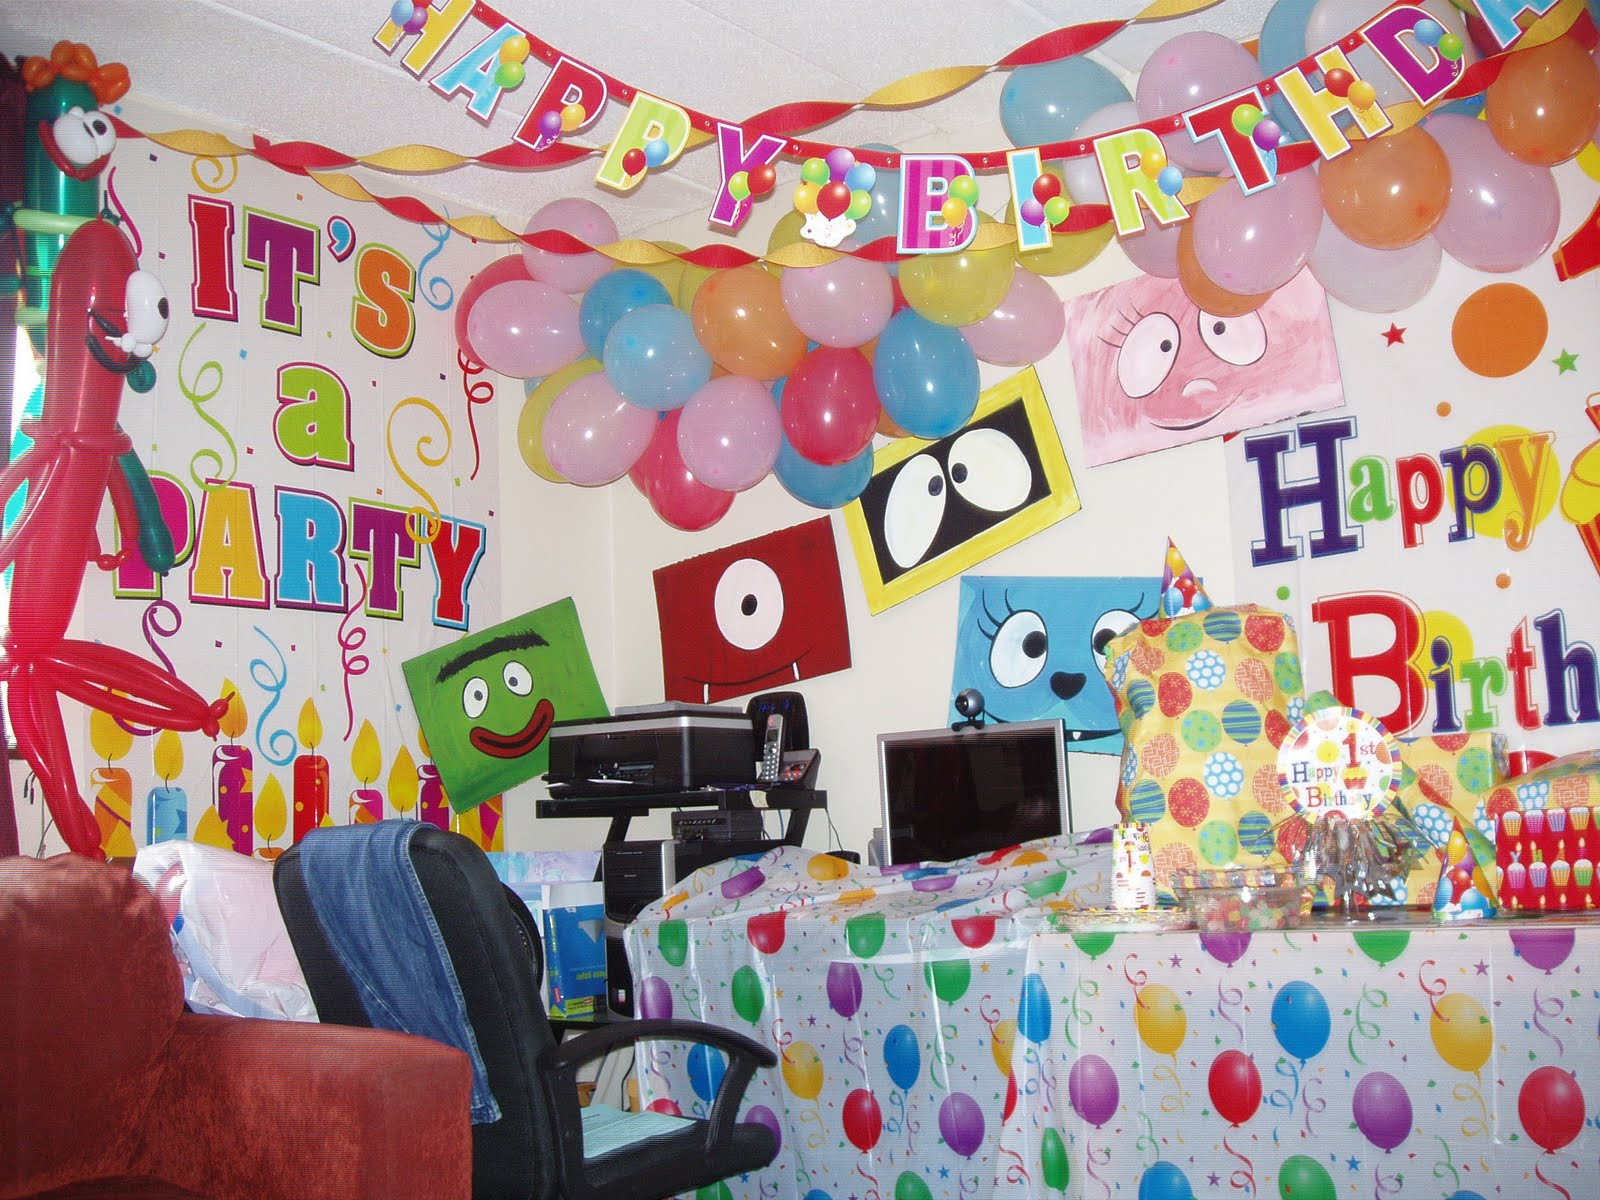 Birthday party decorations photograph katabolic designs bl for Home party decorations